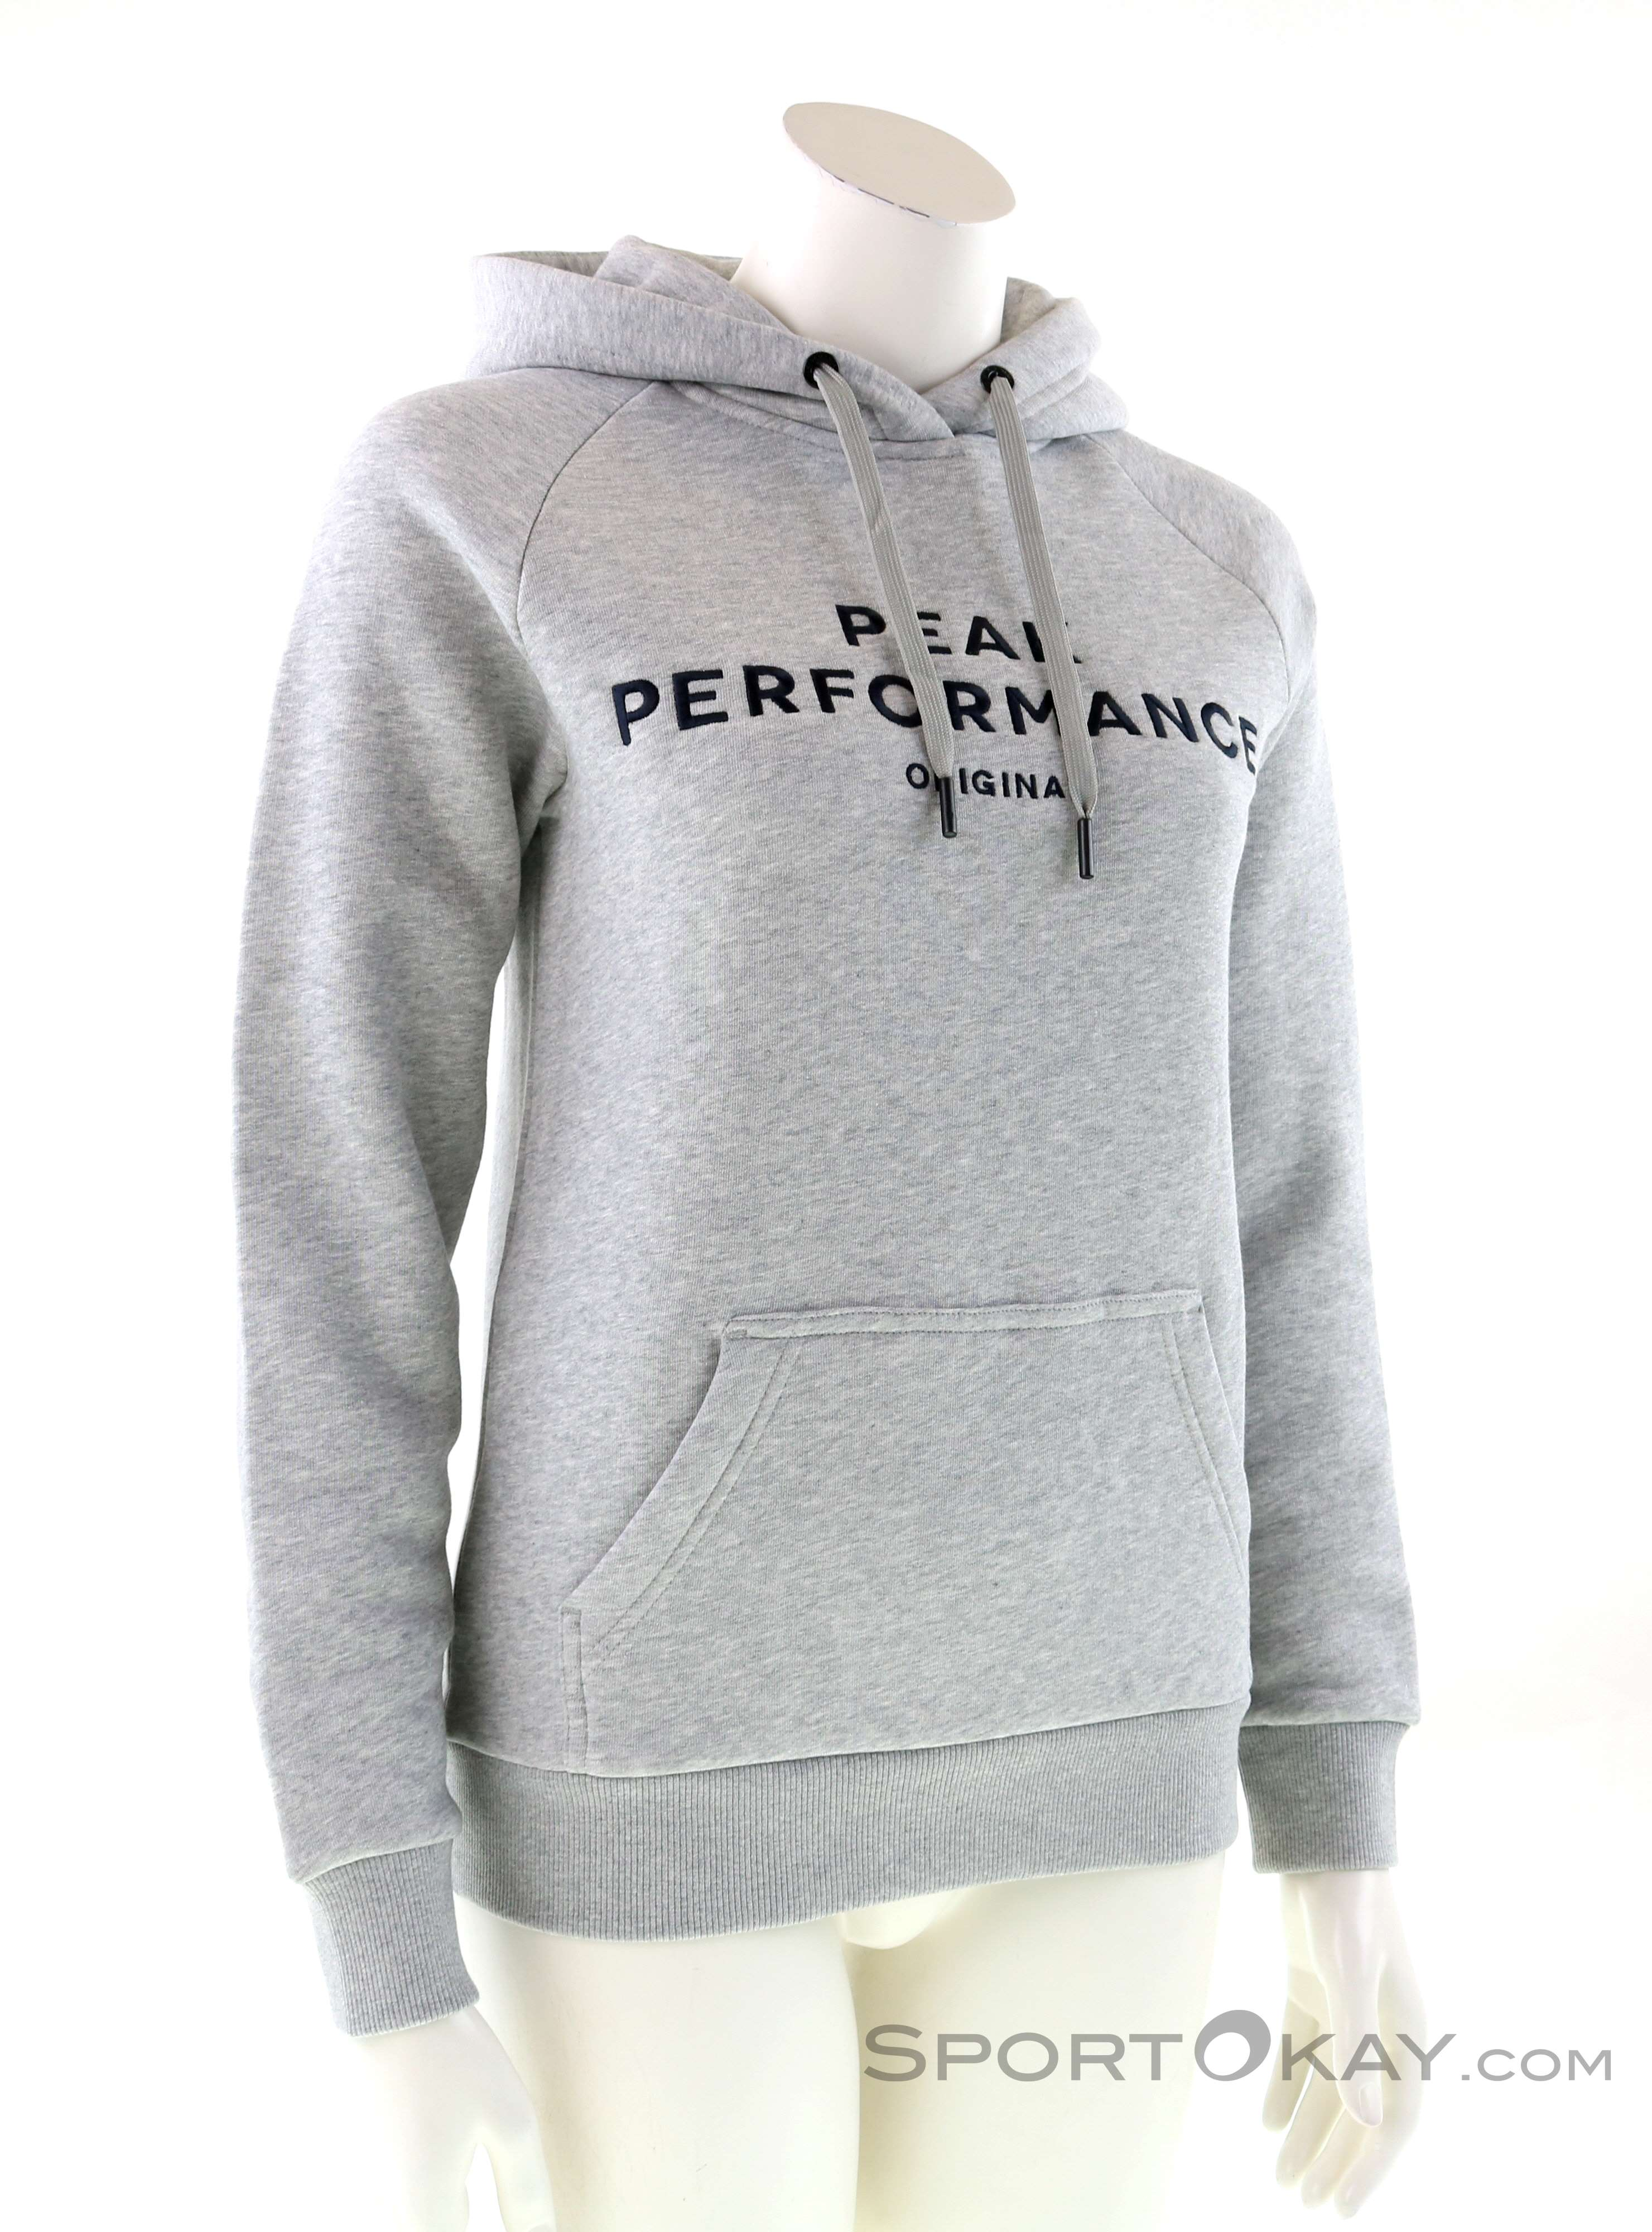 Peak Performance Logo Womens Sweater Sweaters Outdoor Clothing Outdoor All